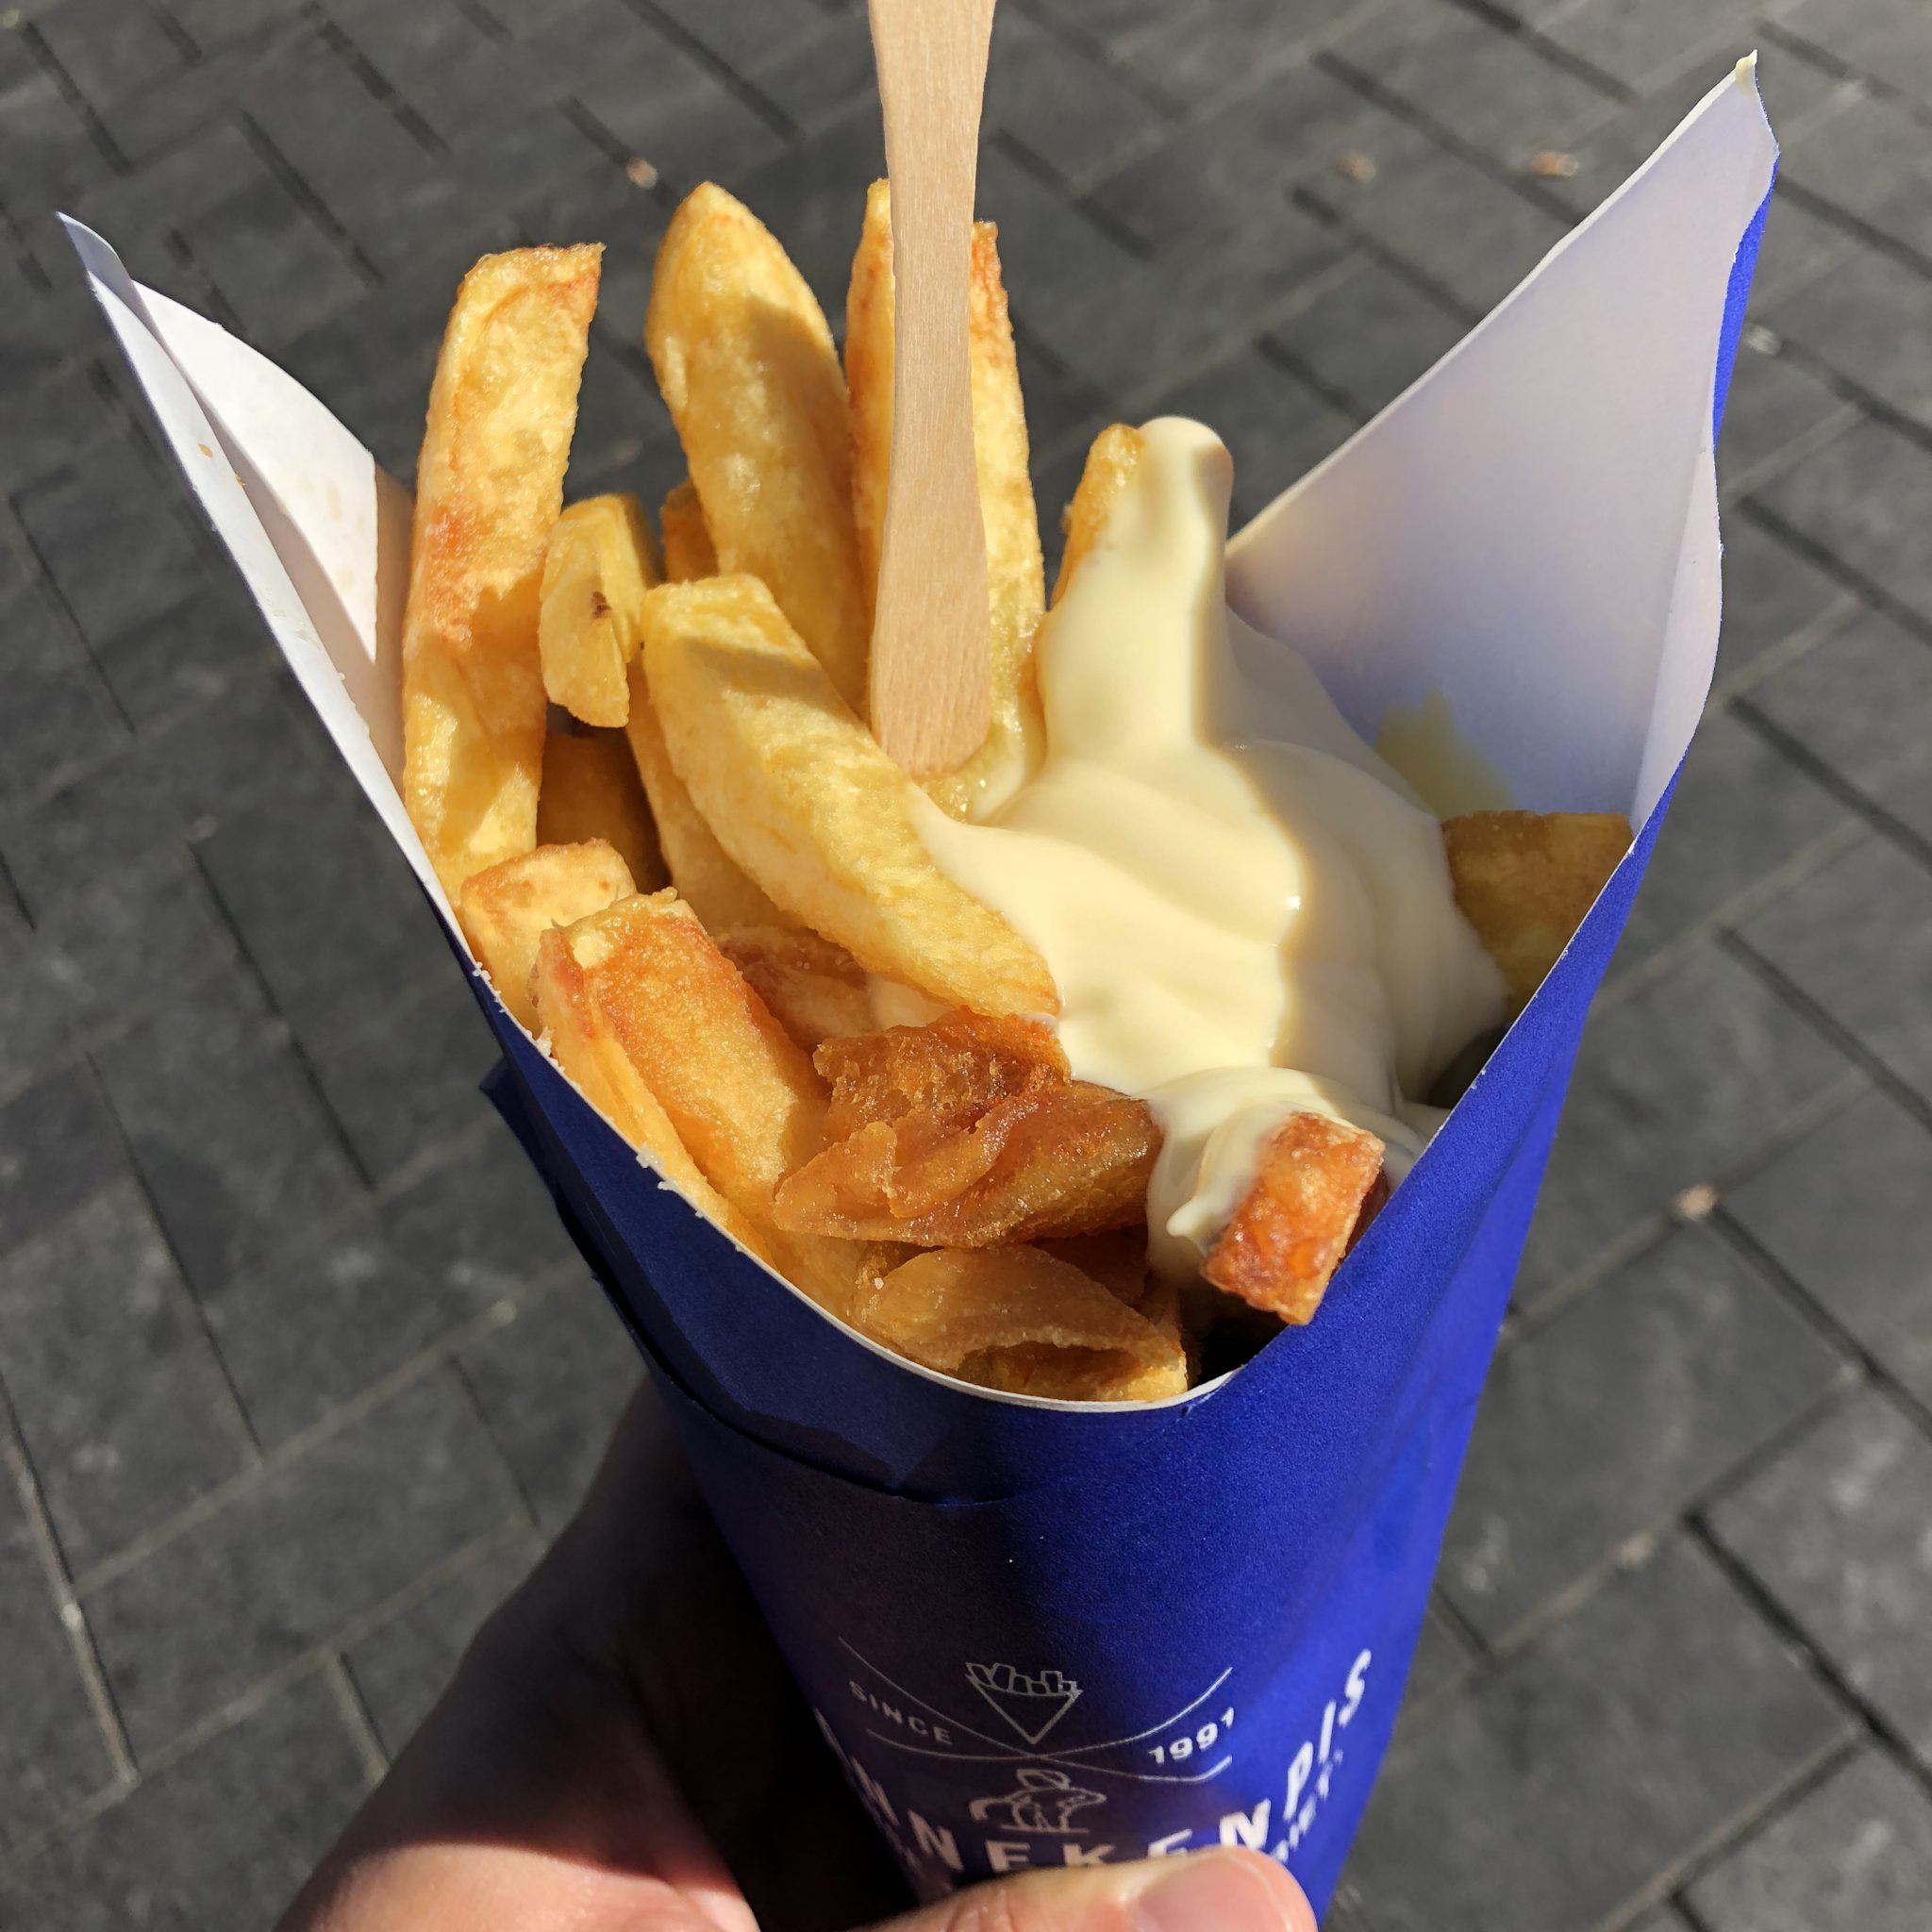 Delicious Dutch Fries And Mayo From Mannekenpis, Amsterdam